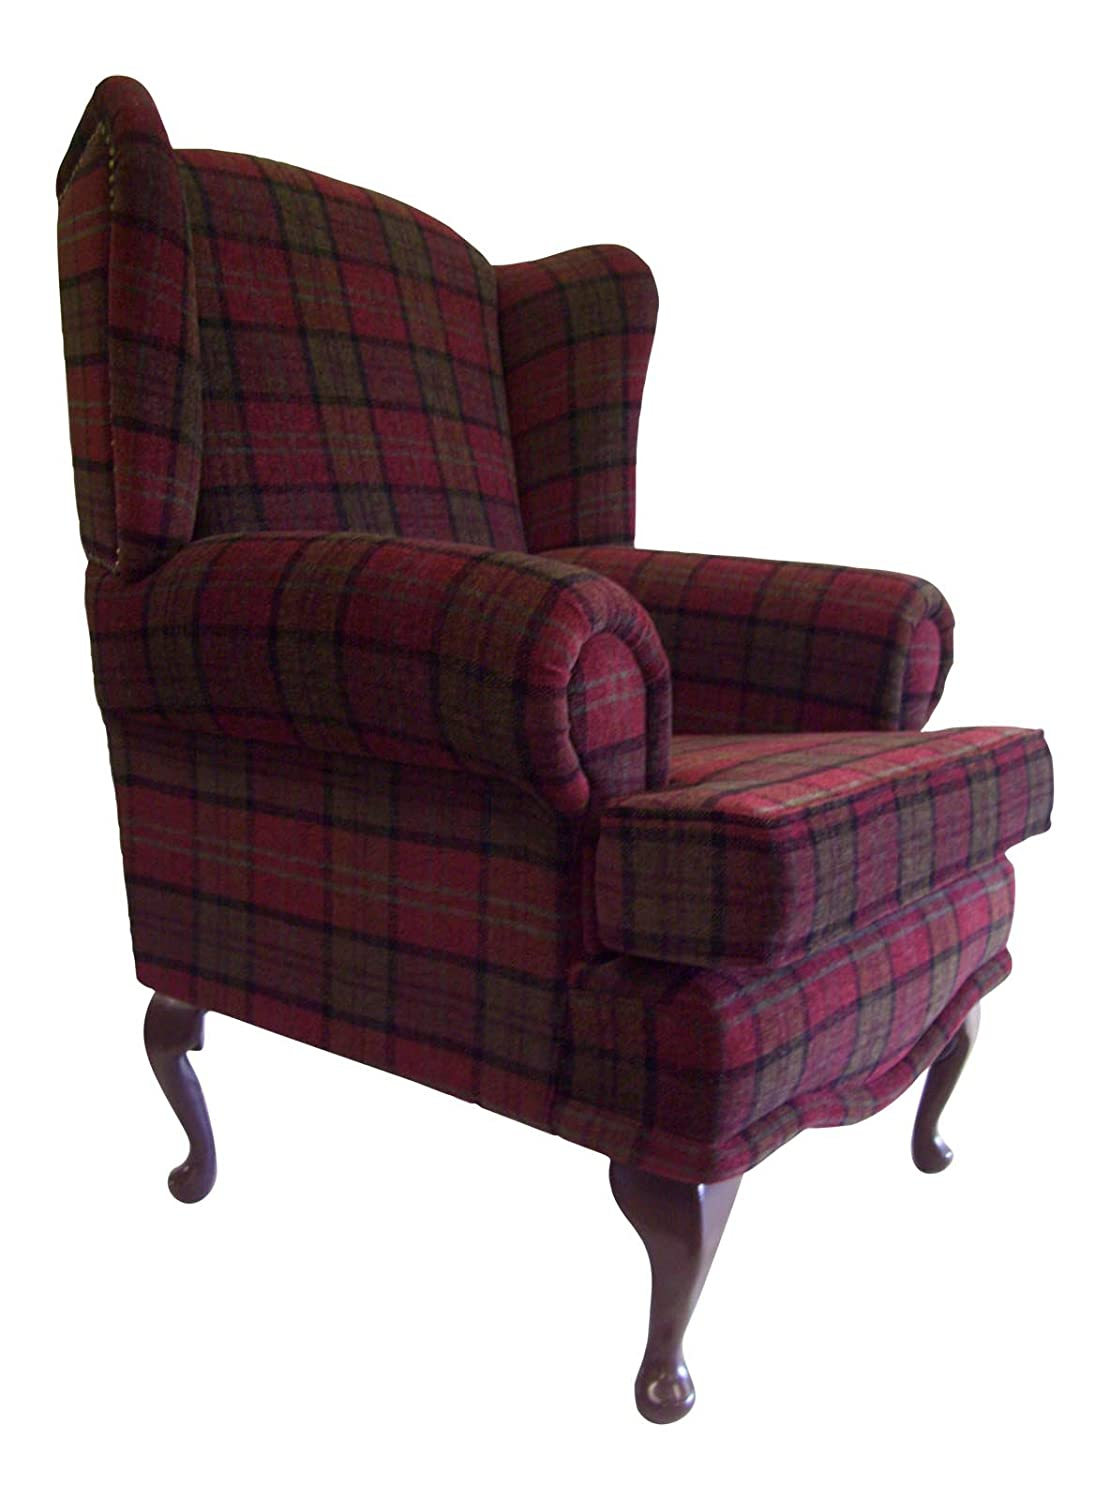 Cottage/Wing Back/ Queen Anne Chair In Burgundy Lana Tartan On QA Legs:  Amazon.co.uk: Kitchen U0026 Home